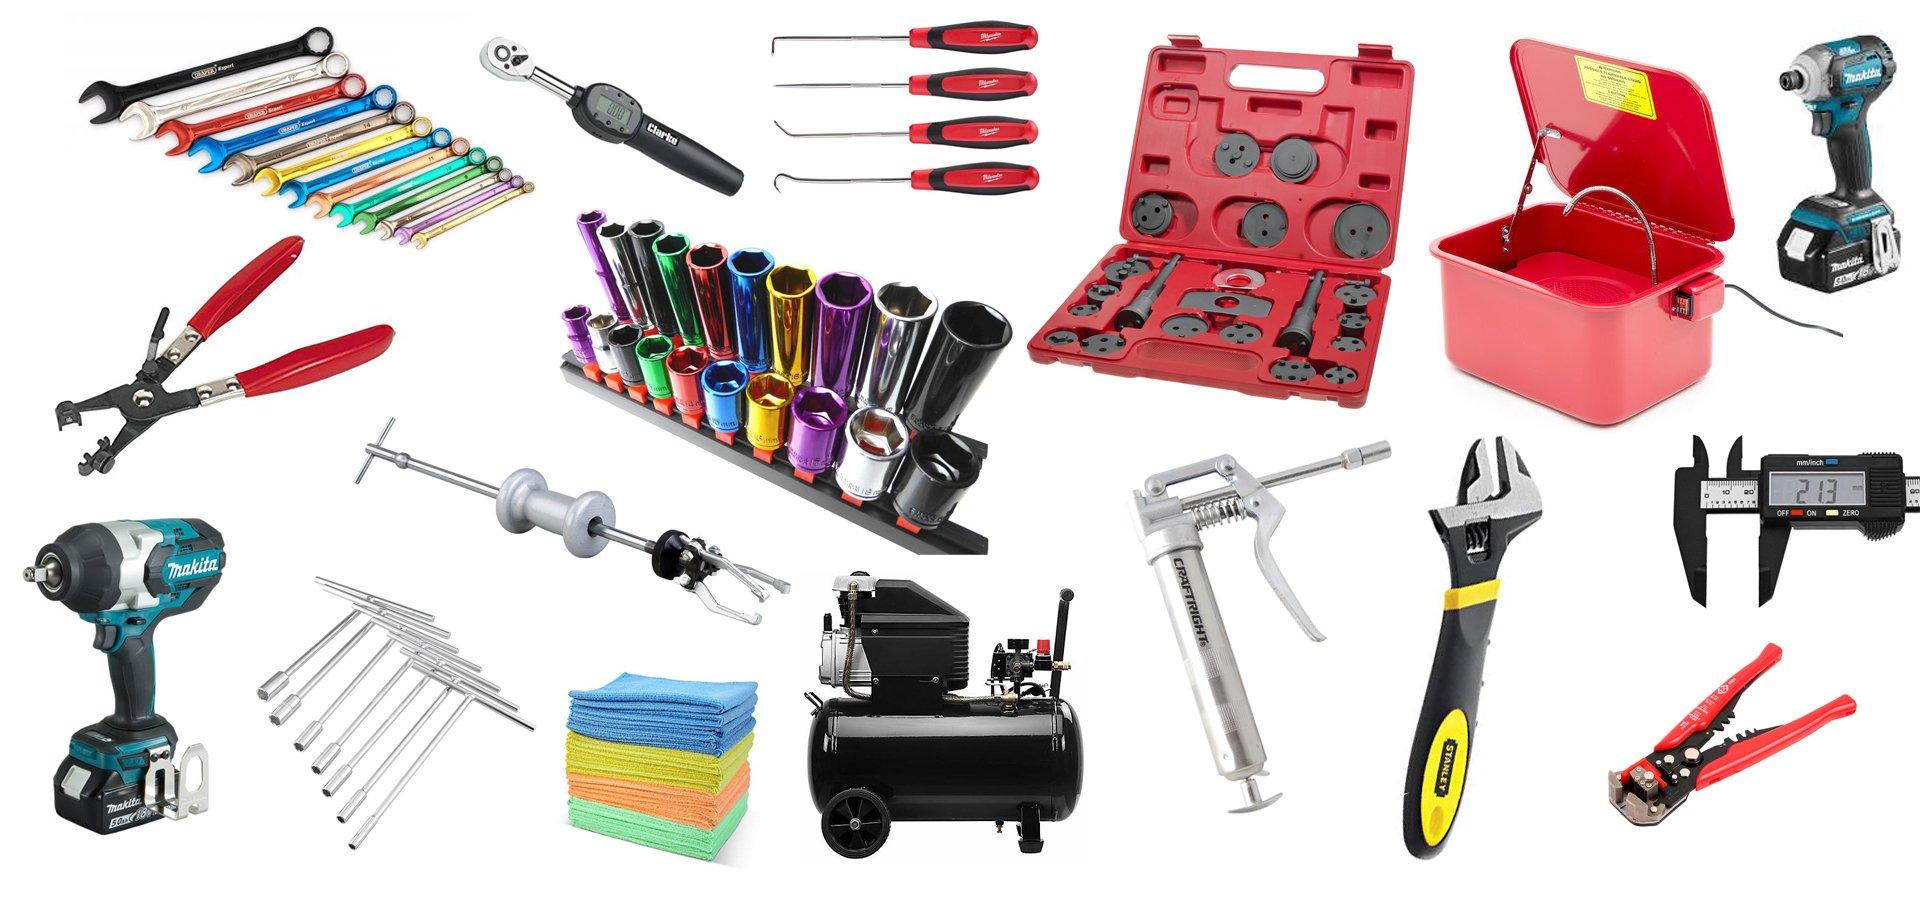 What Key Tools are Used by a Mechanic?